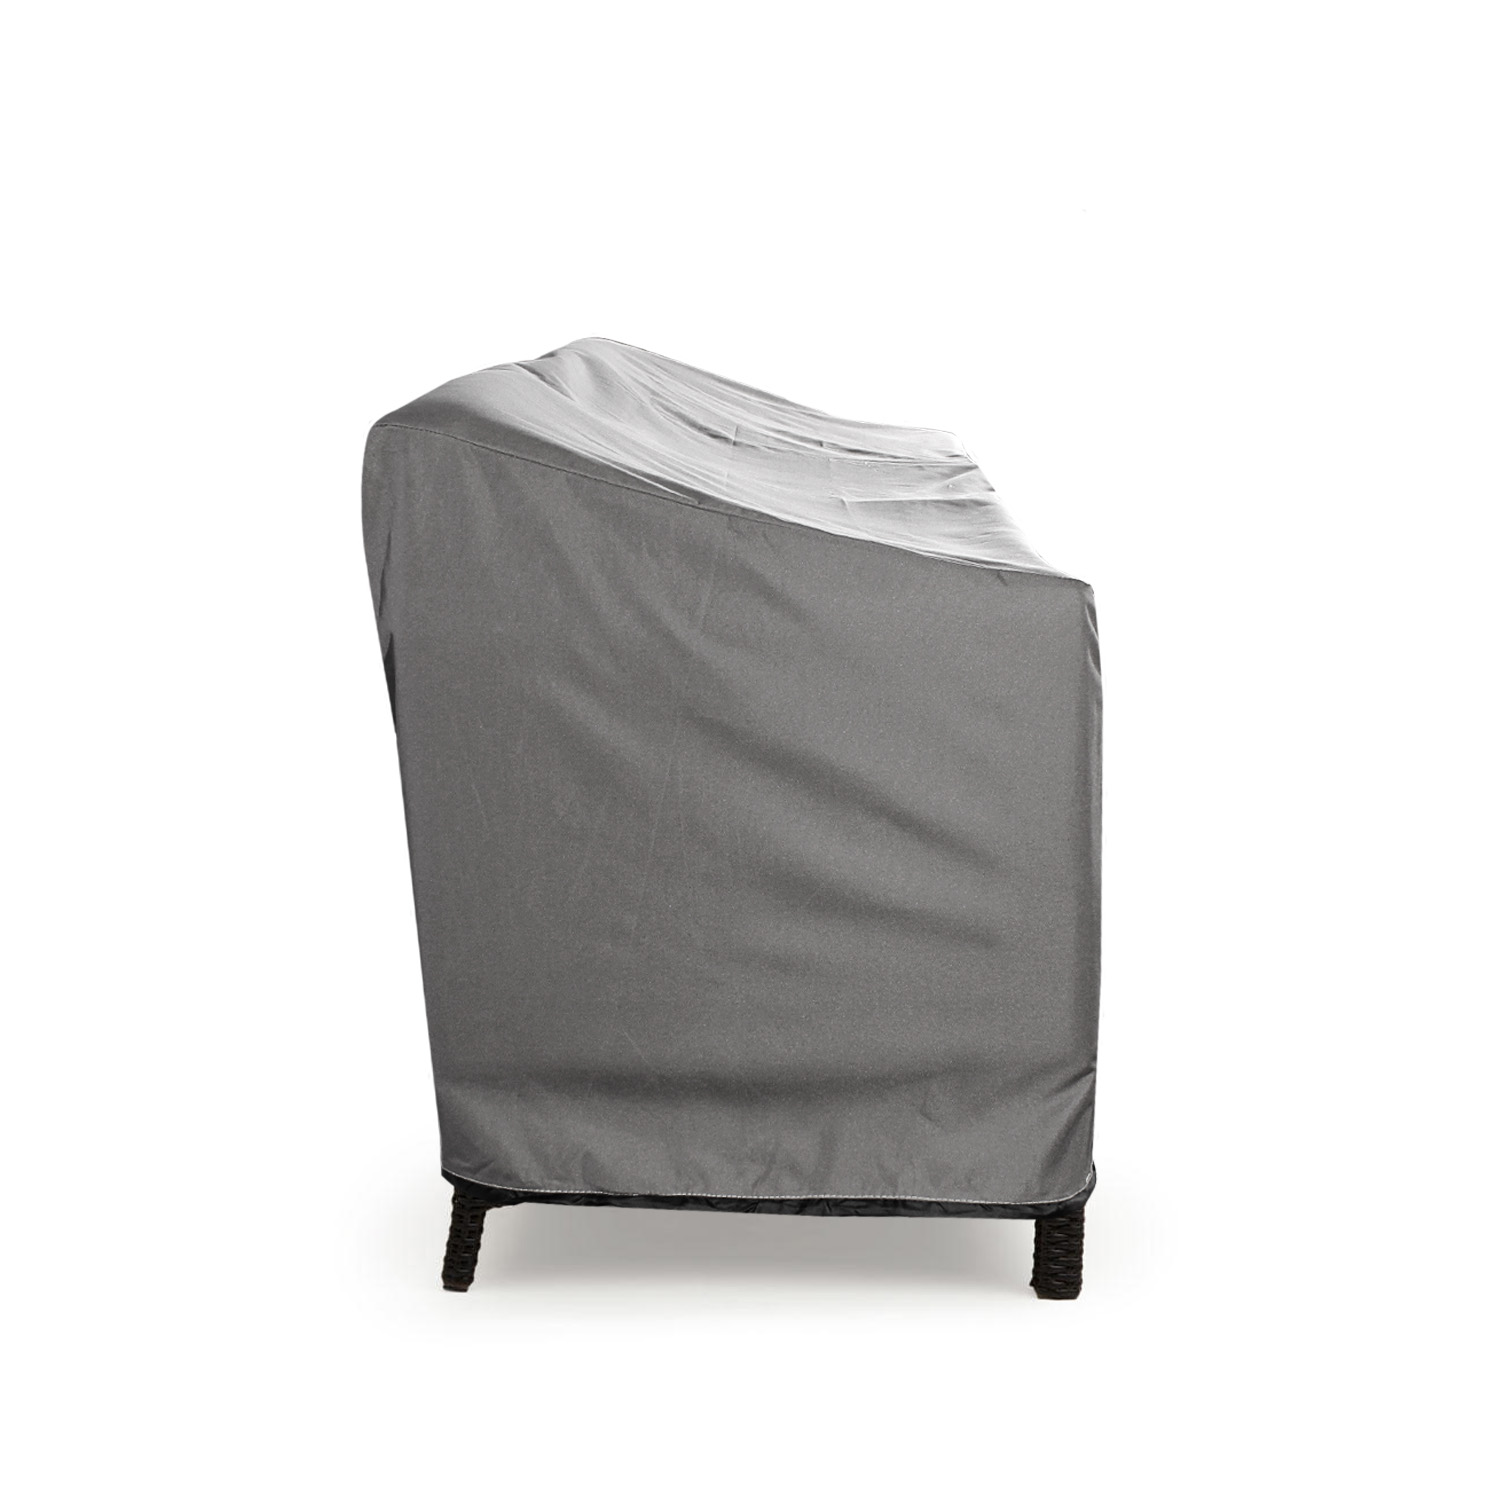 sofa waterproof cover extra large throw patio lounge heavy duty outdoor